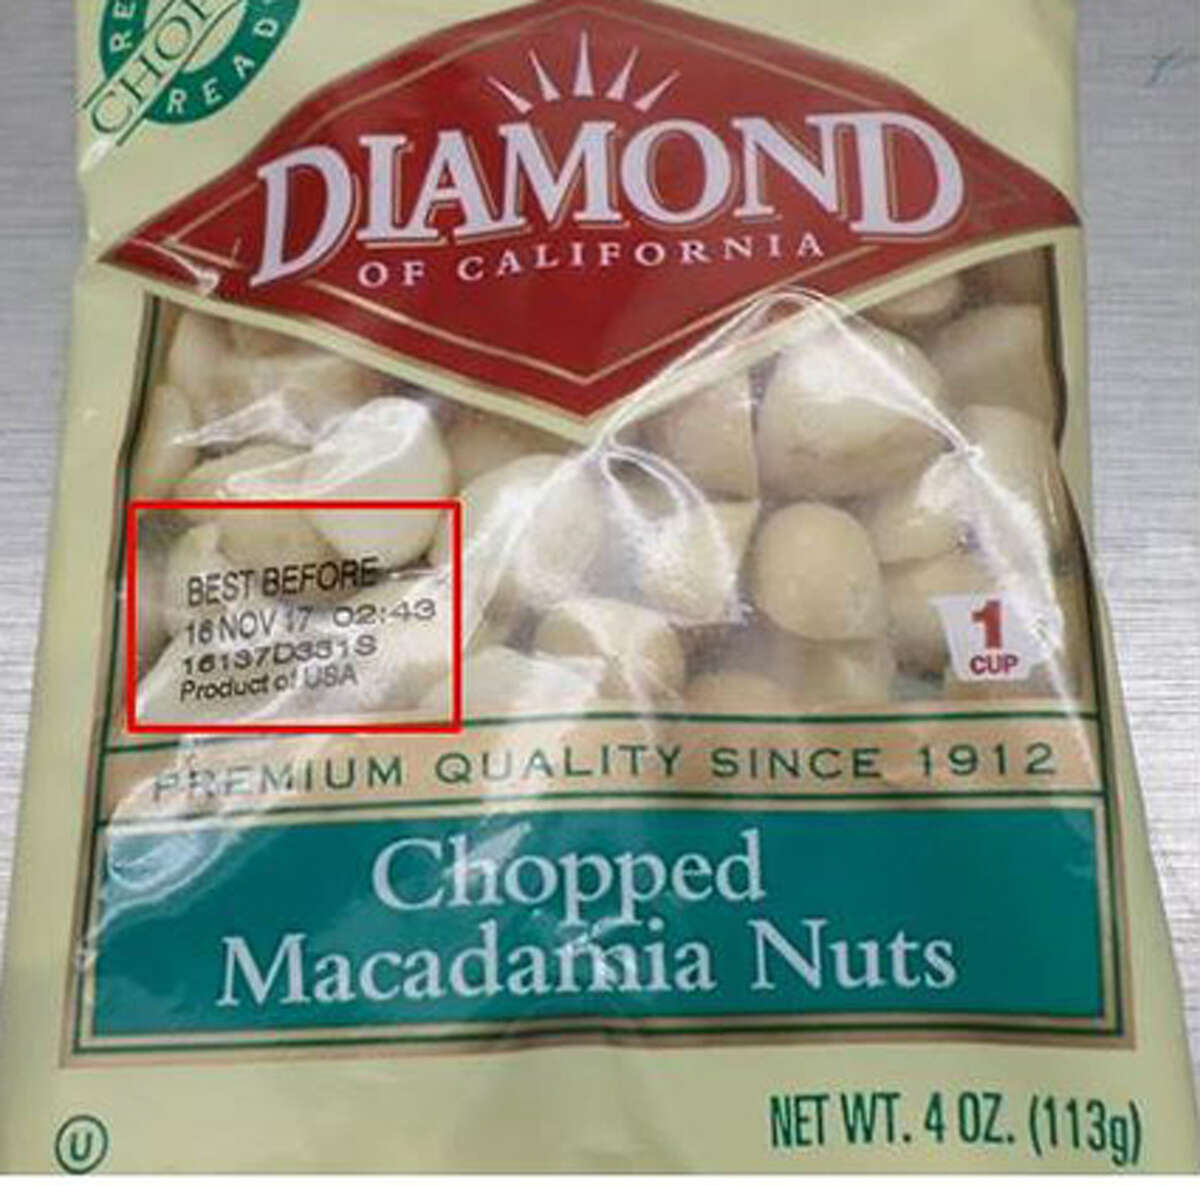 Snyder's-Lance, Inc. is initiating a voluntary recall of Diamond of California Macadamia Nuts, distributed in retail stores nationwide, due to possible Salmonella contamination. Photo courtesy of the Food and Drug Administration.